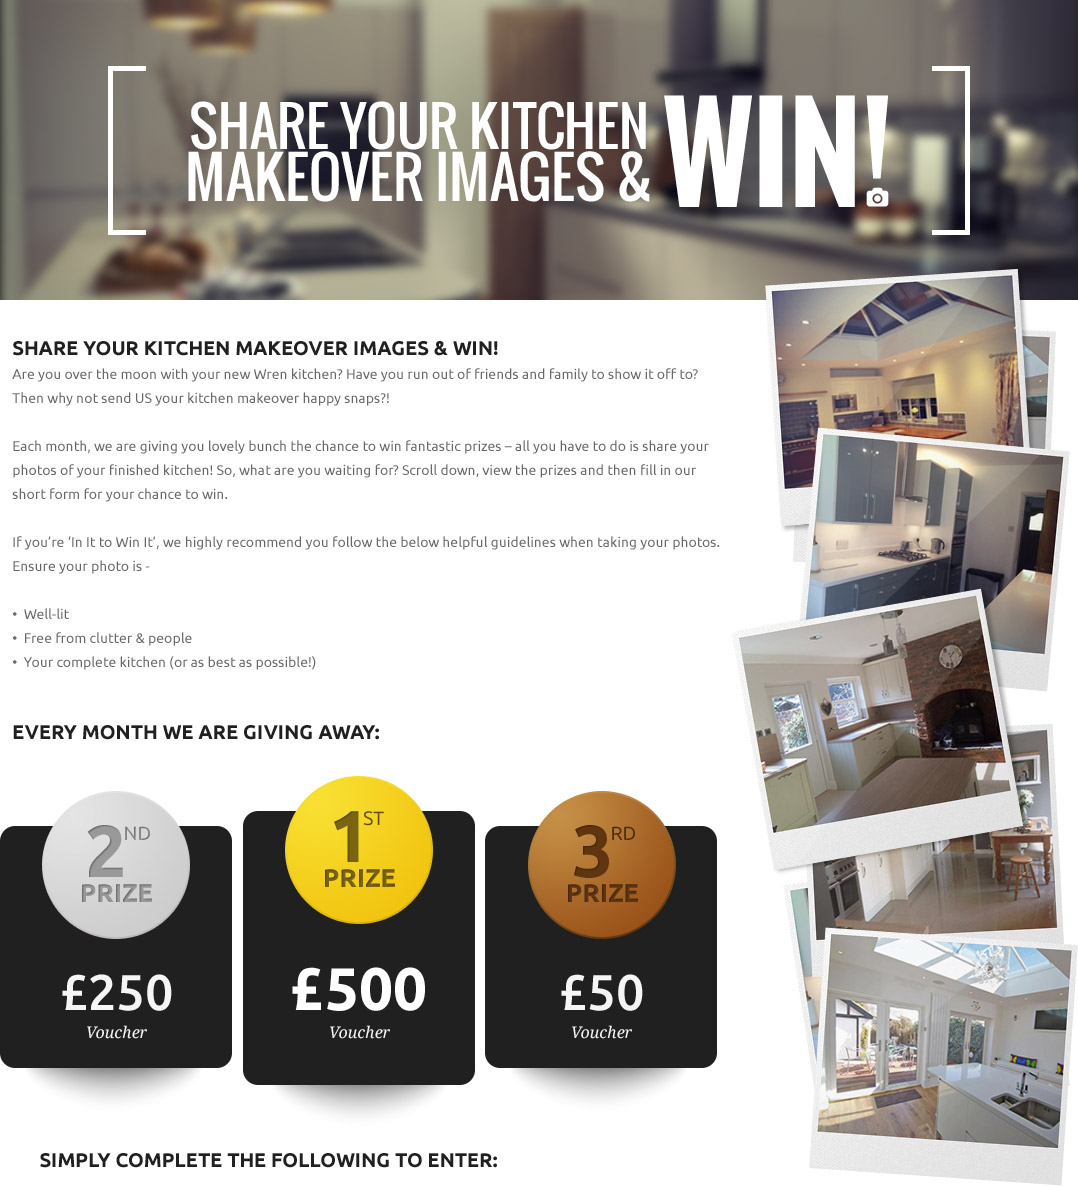 Share Your Kitchen Makeover Images